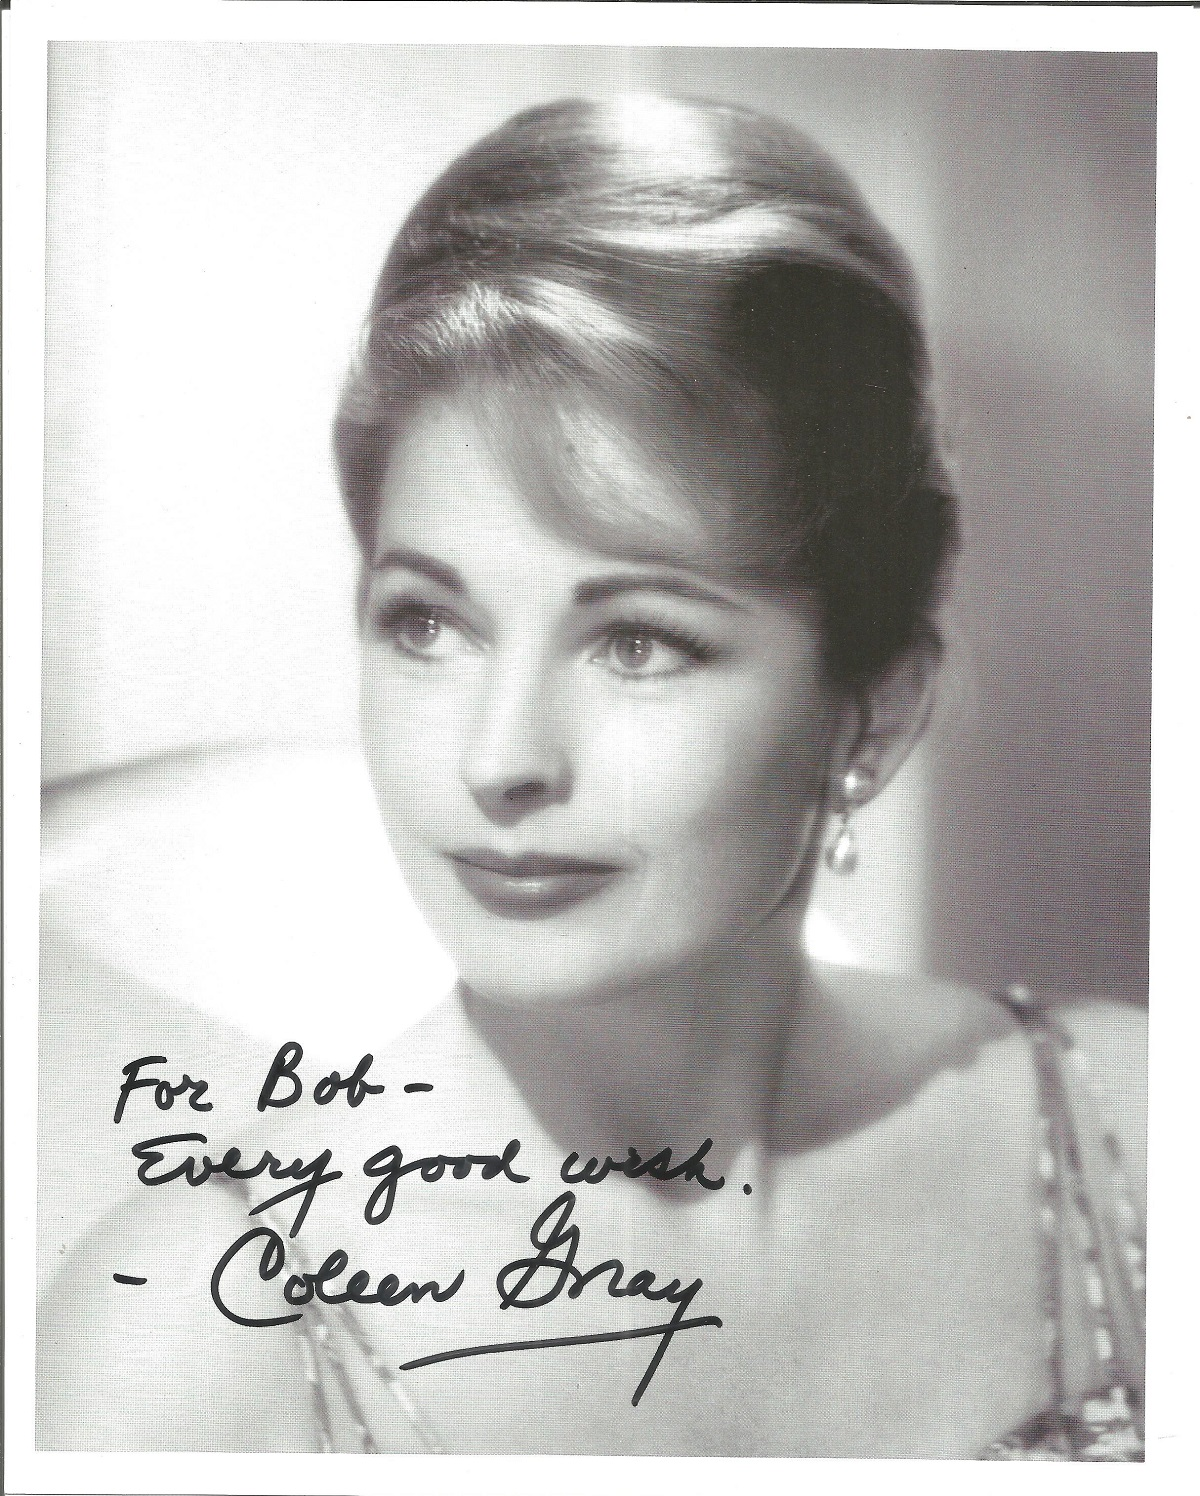 Coleen Gray signed 10x8 black and white image. Dedicated to Bob. Coleen was an actress best known